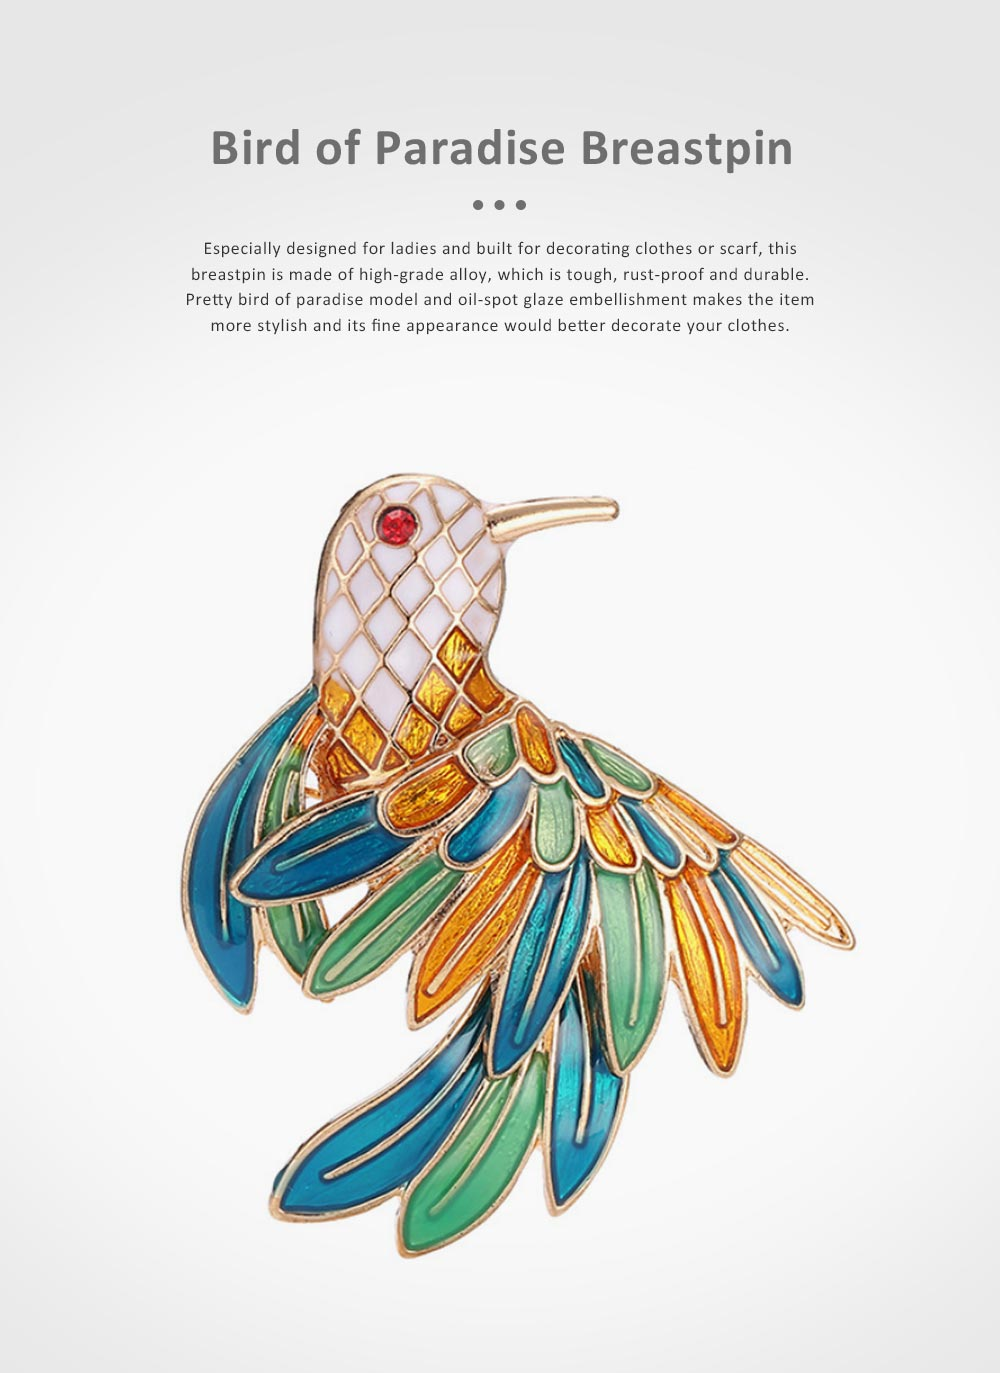 Delicate Fancy Bird of Paradise Model Breastpin for Ladies, Colorful Oil-spot Glaze Brooch Clothes Ornament Decoration 0